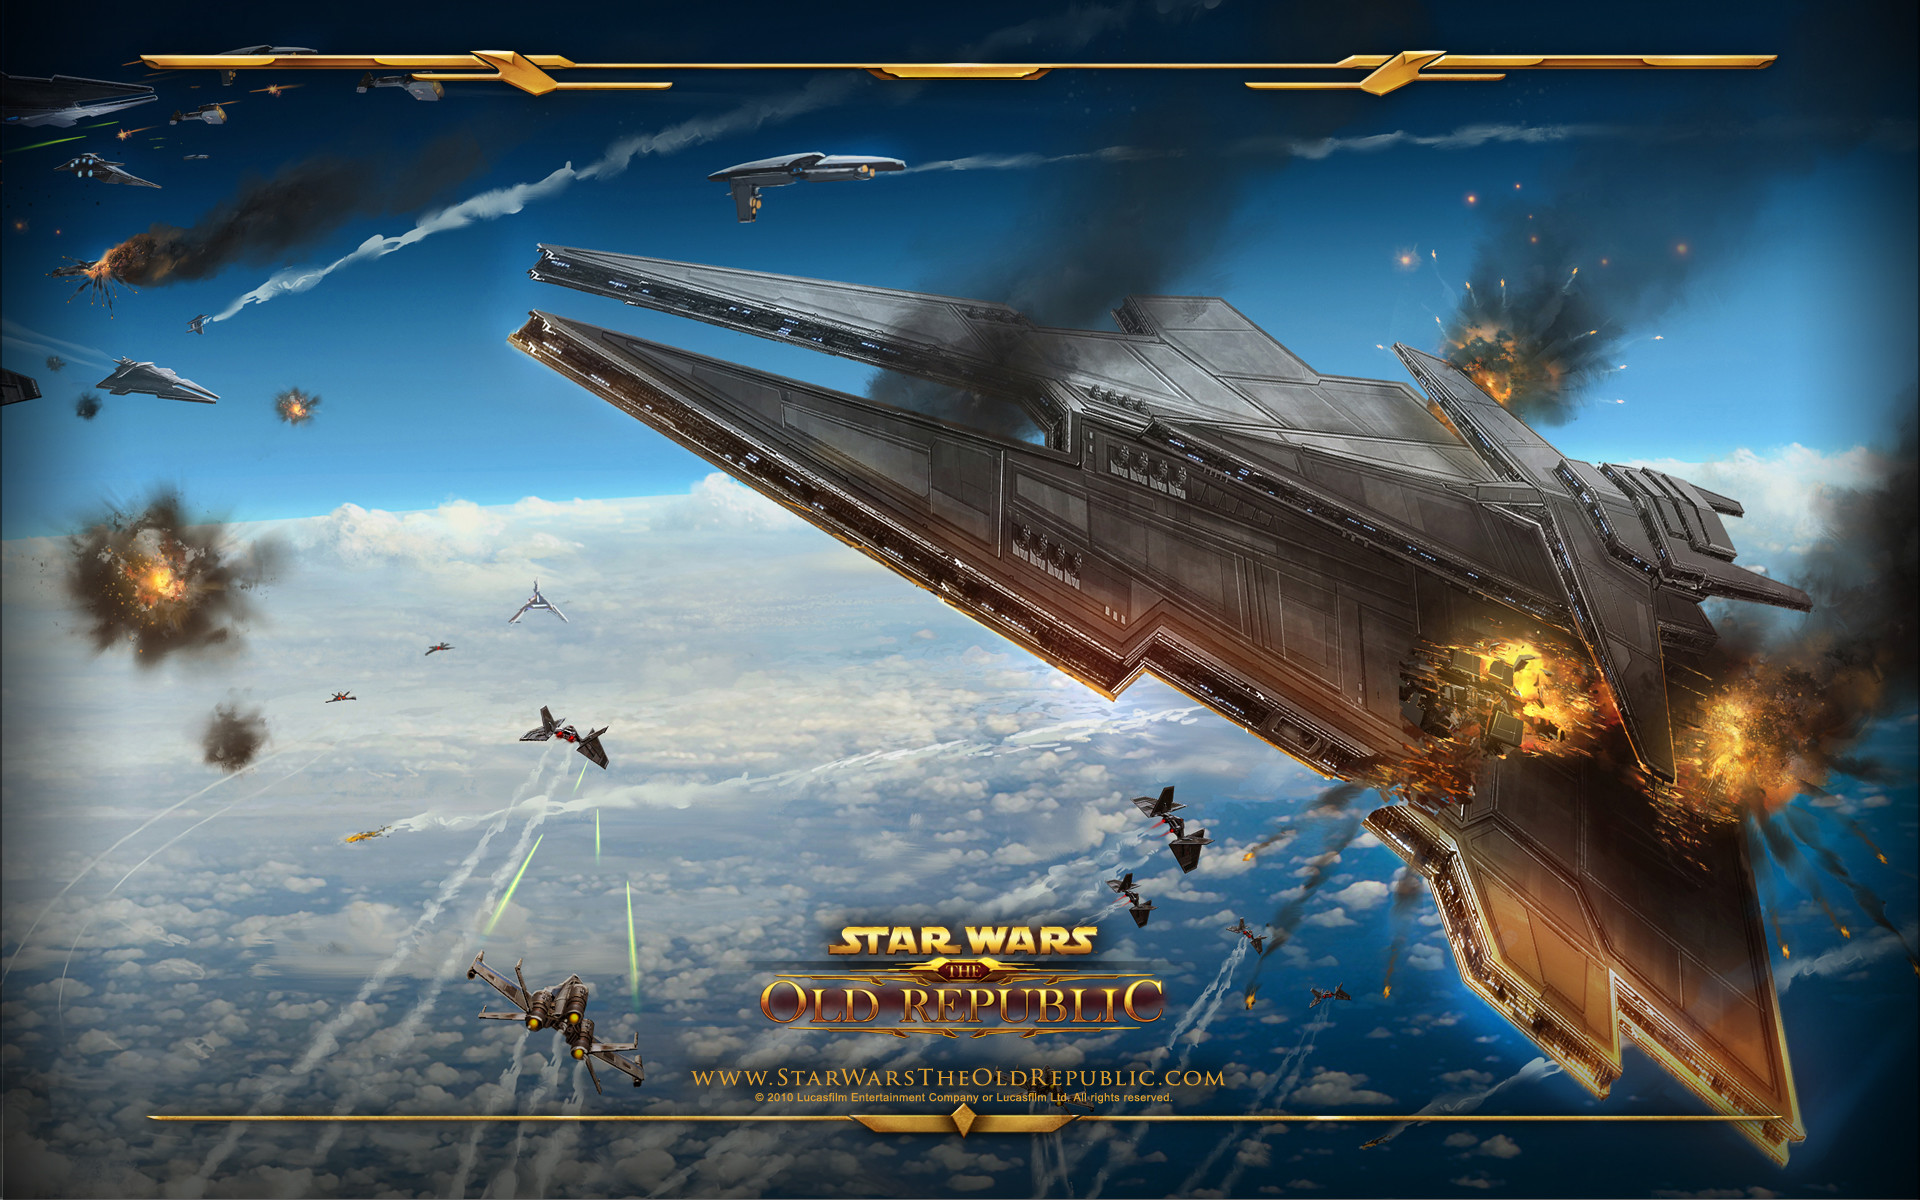 SWTOR Wallpapers   Star Wars Wallpapers   Star Wars: TOR Fever   SWTOR .